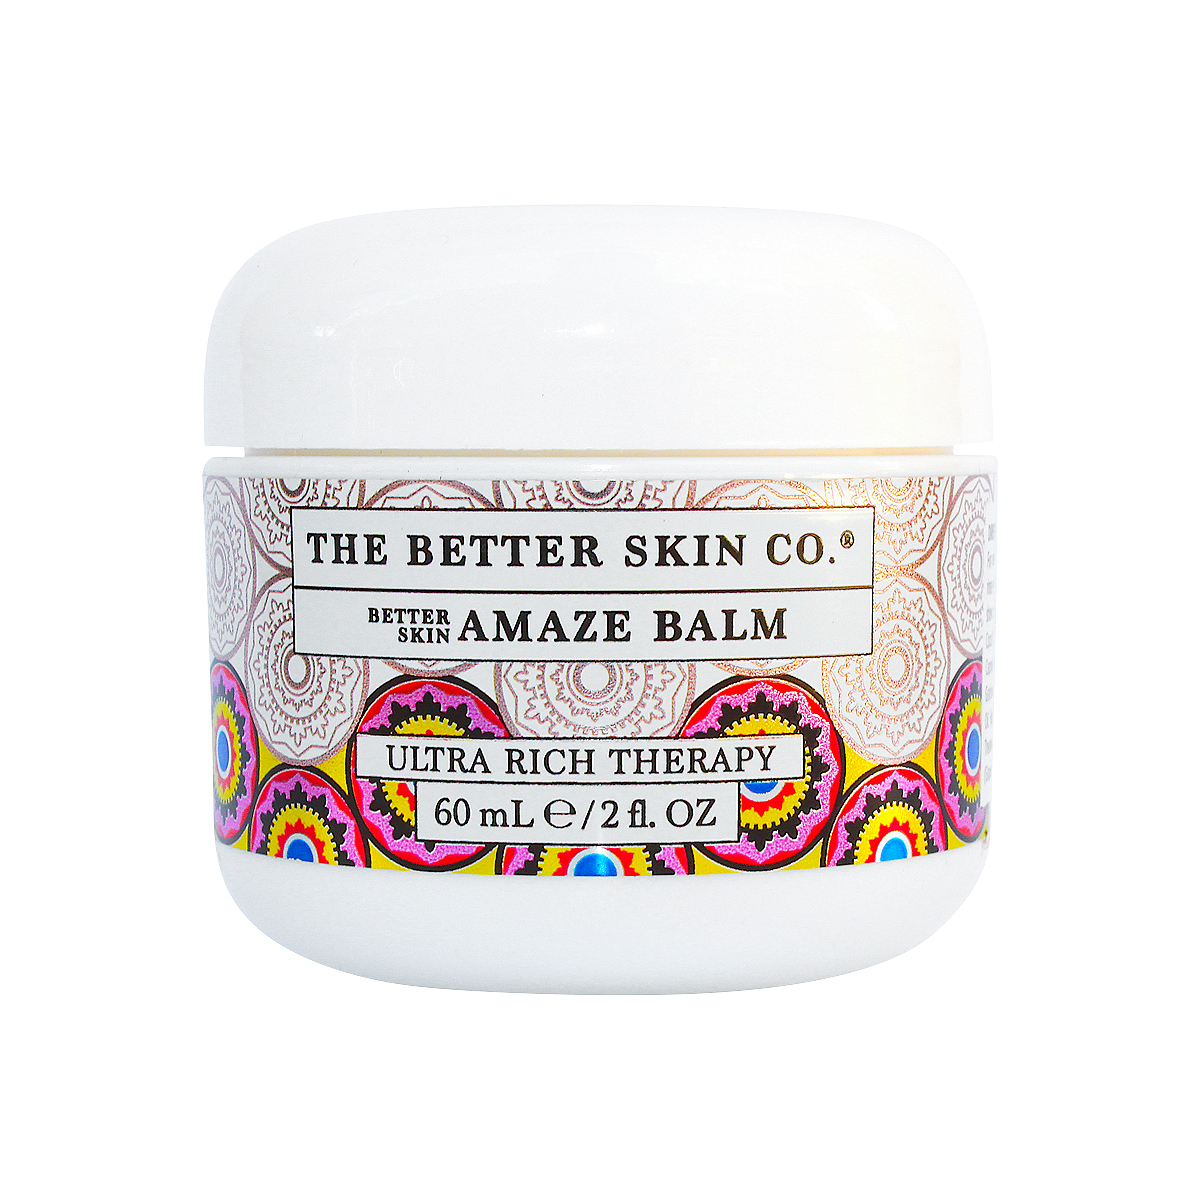 balm product for BCA. contact Jackie_fields@peoplemag.com for usage.